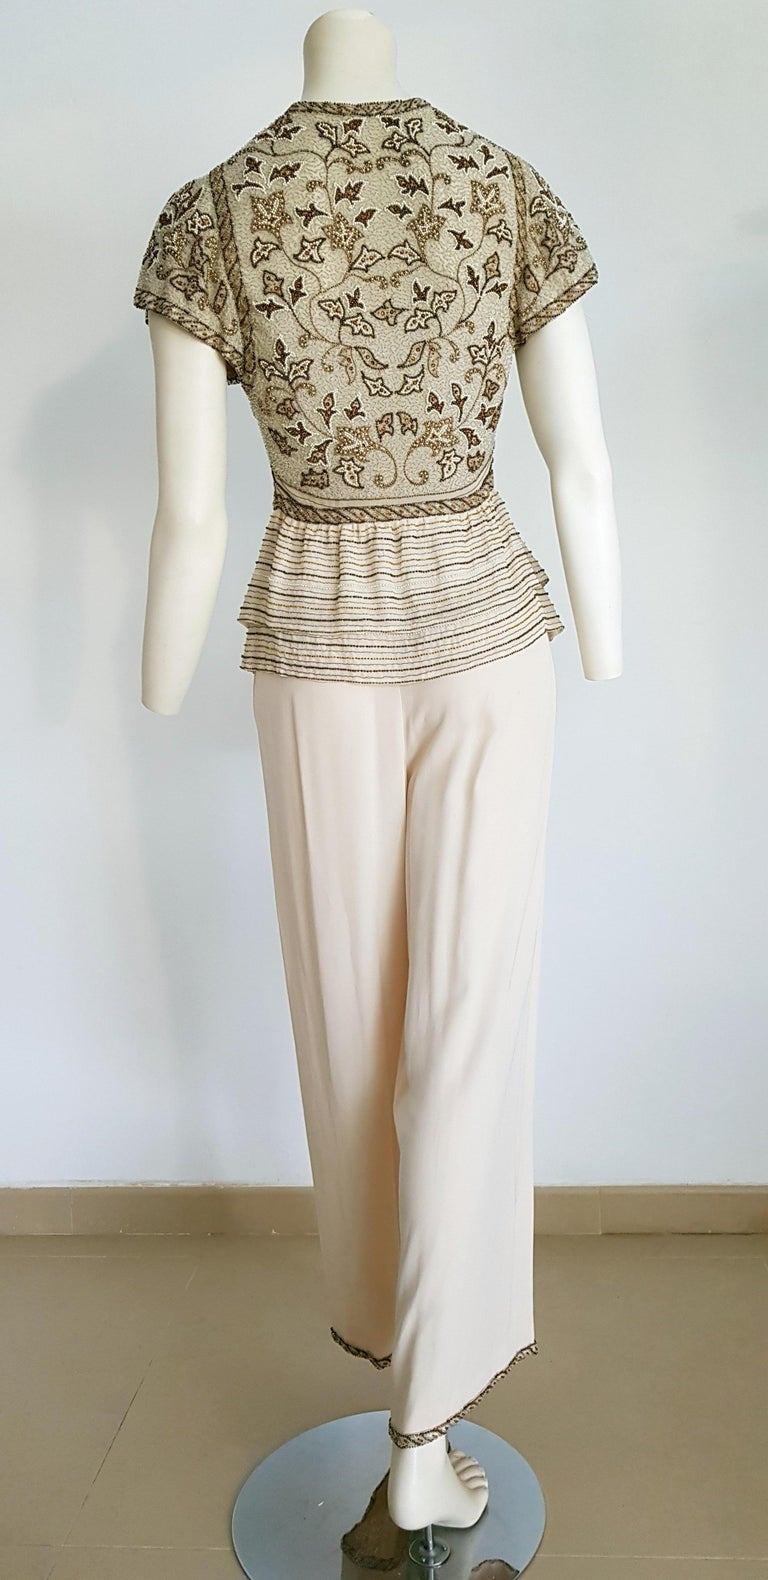 VALENTINO Haute Couture top and pants, silk and organza crepe, embroidered swarovski beaded beige dress - Unworn New  SIZE: equivalent to about Small / Medium, please review approx measurements as follows in cm.  TOP: lenght 60, chest underarm to